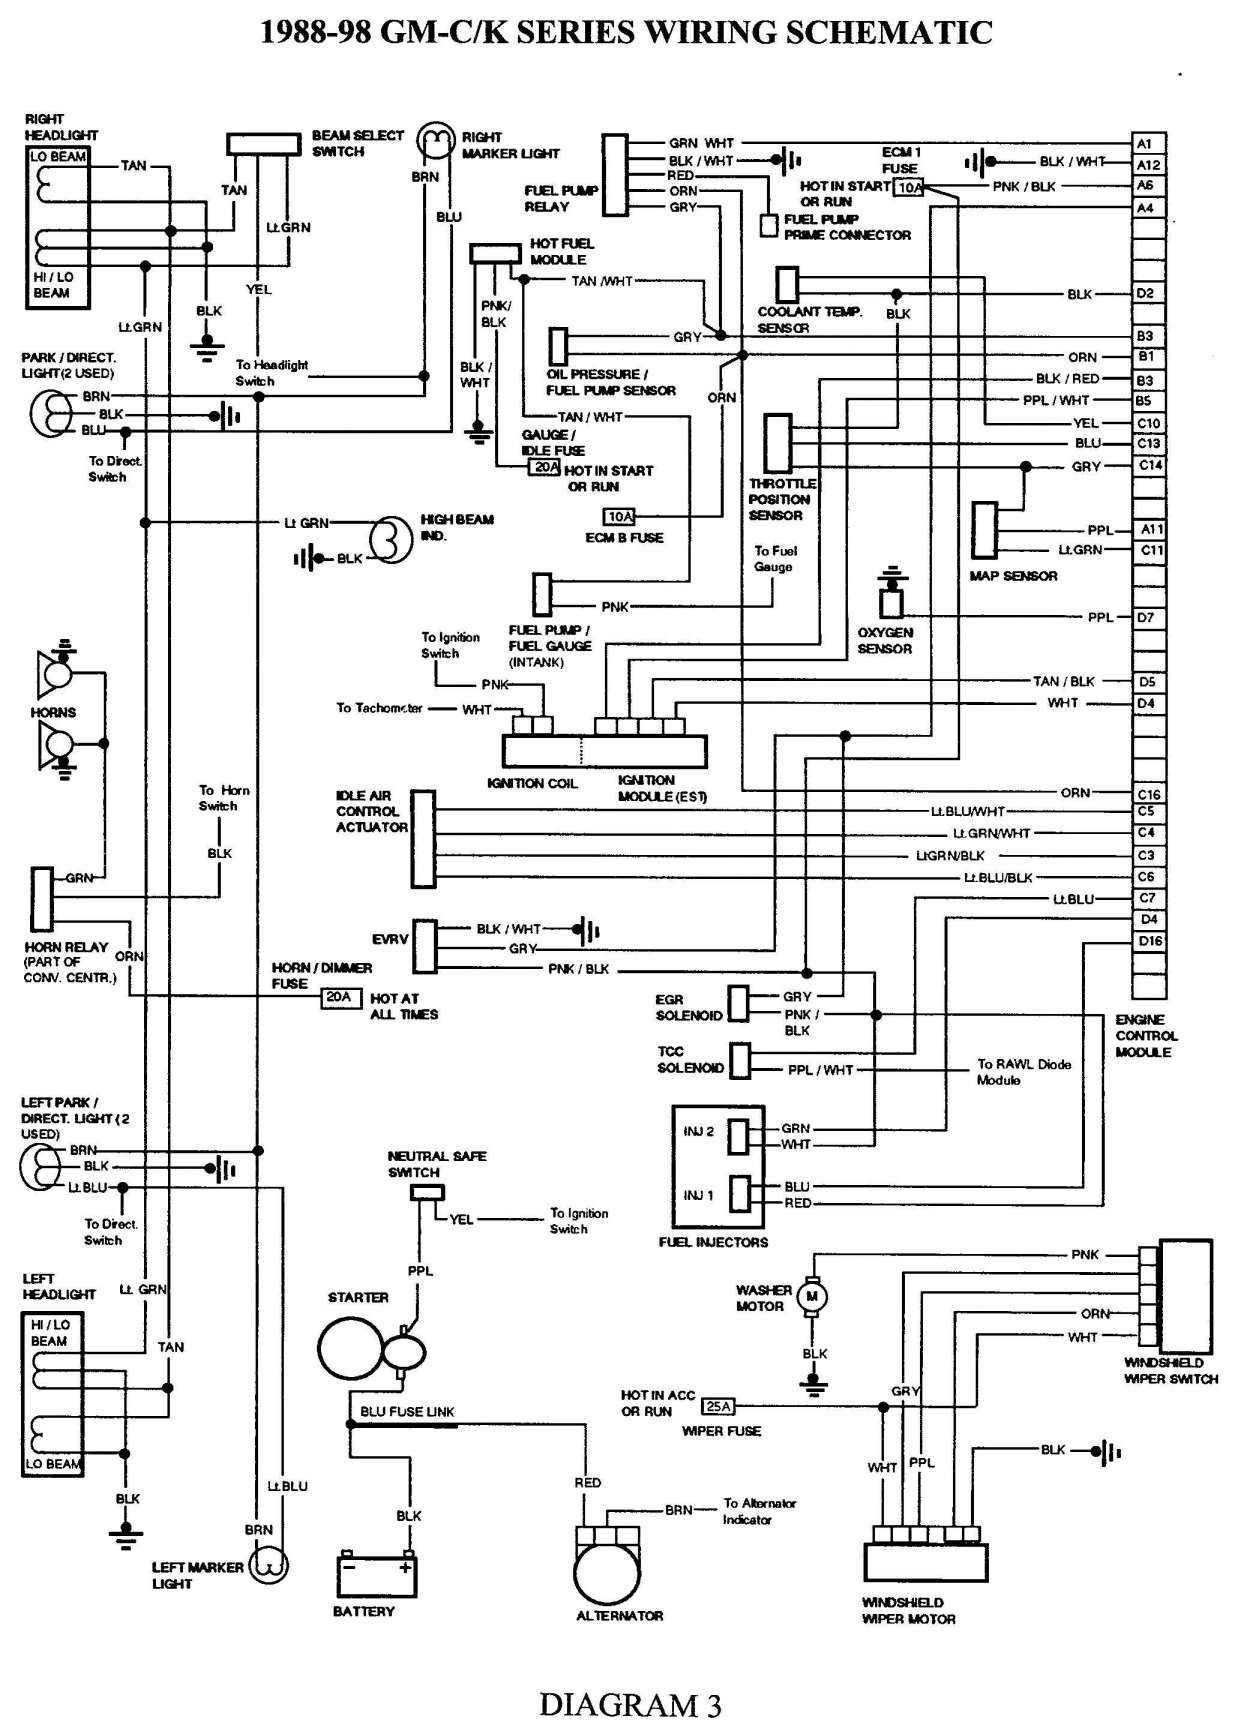 12+ 1988 Chevy Truck Wiring Diagram - Truck Diagram - Wiringg.net in 2020 | Electrical  diagram, 1986 chevy truck, Chevy 1500Pinterest